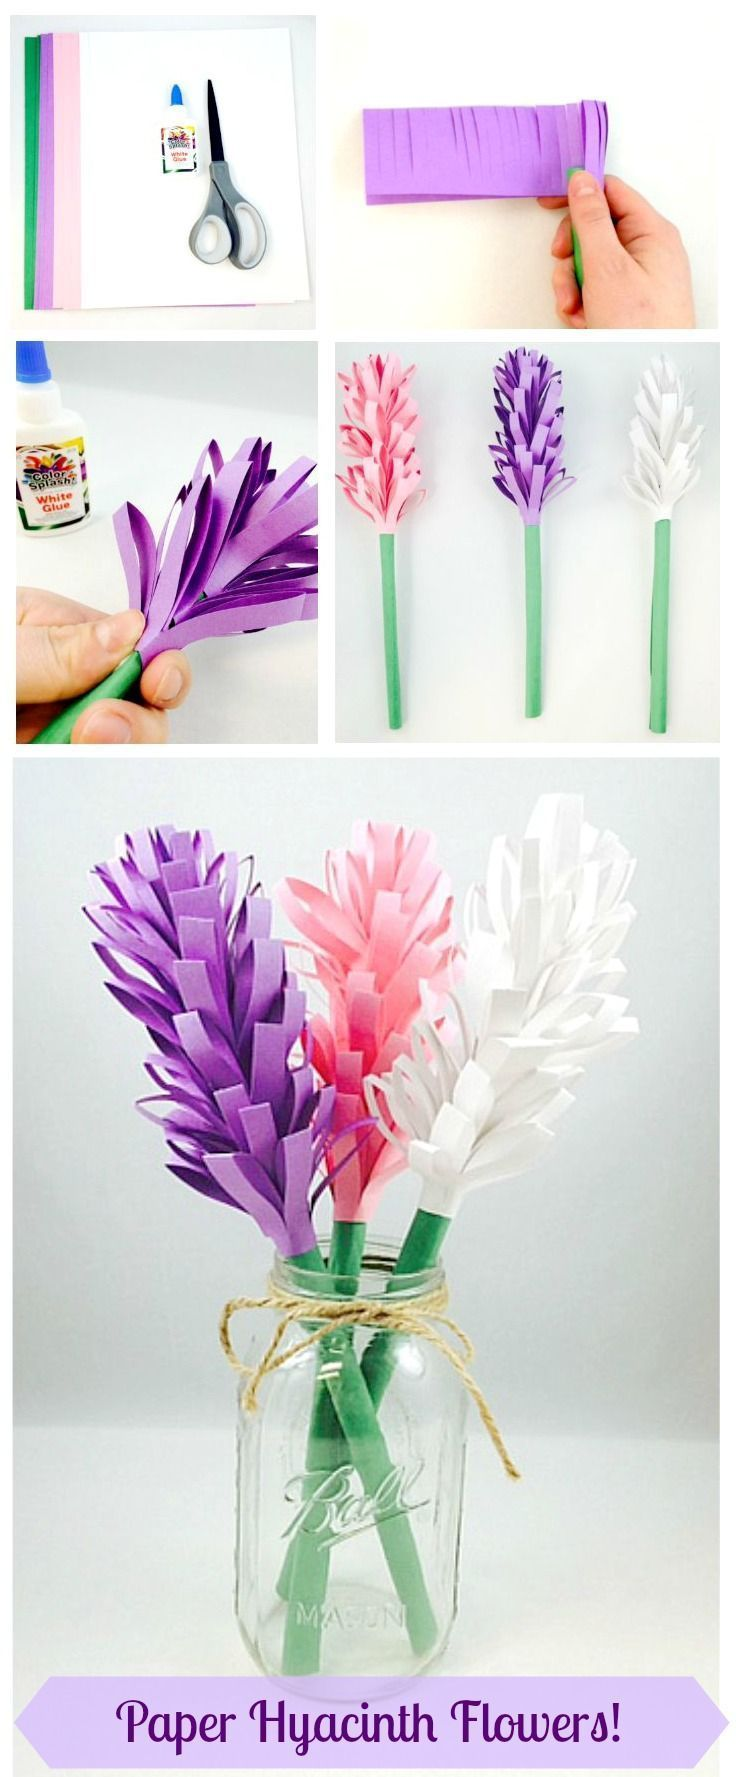 Easy paper hyacinth flowers hyacinth flowers construction paper easy paper hyacinth flowers three materials needed for this fun spring craft project construction jeuxipadfo Images